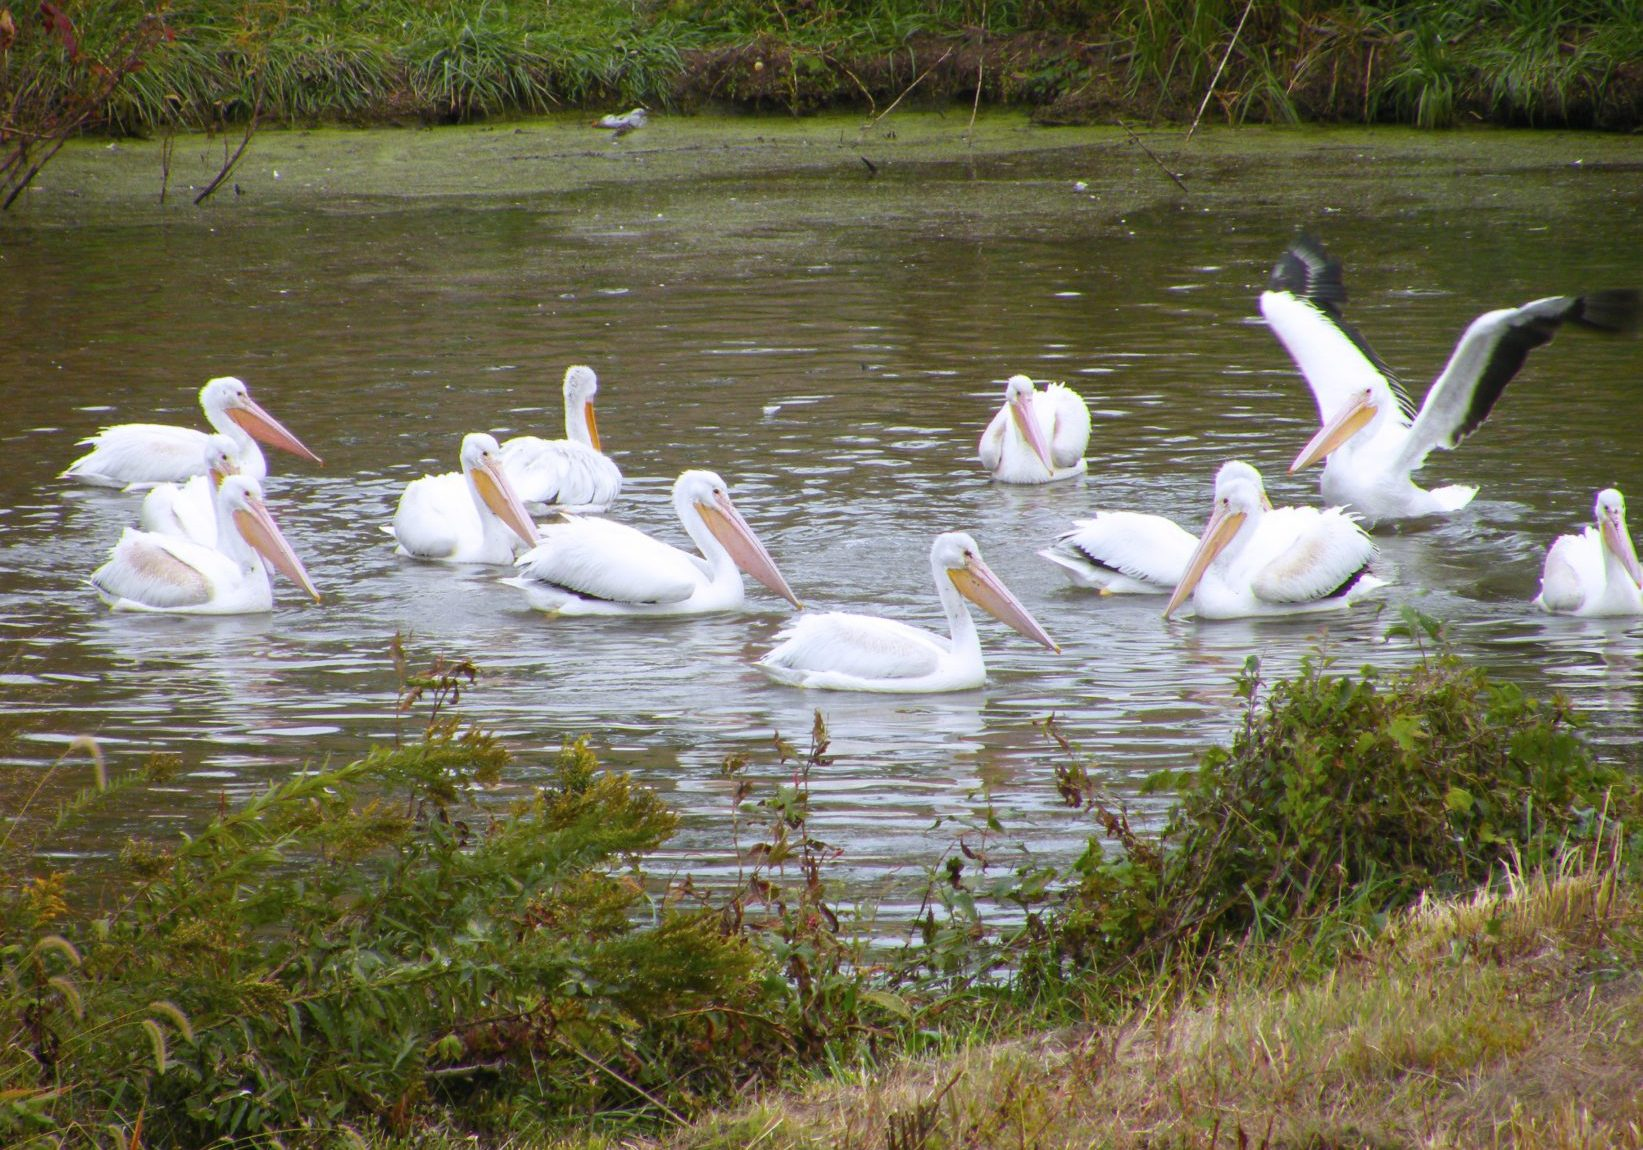 Pelicans Fishing on the Illinois River